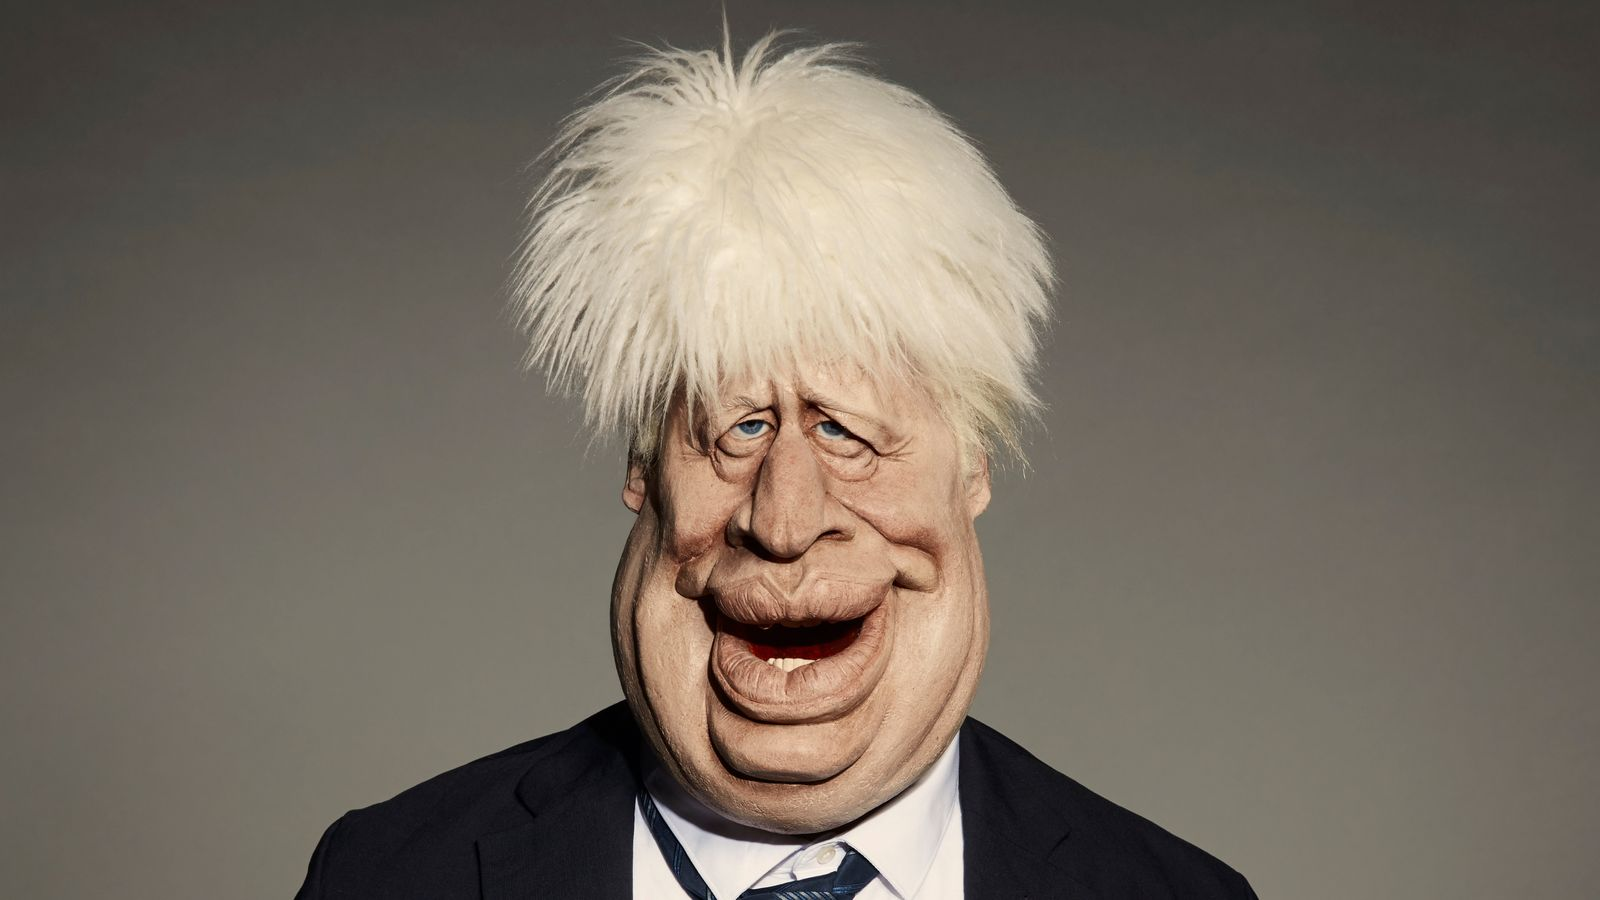 Spitting Image Boris Johnson Prince Andrew And Dominic Cummings Puppets Shown For First Time Ents Arts News Sky News